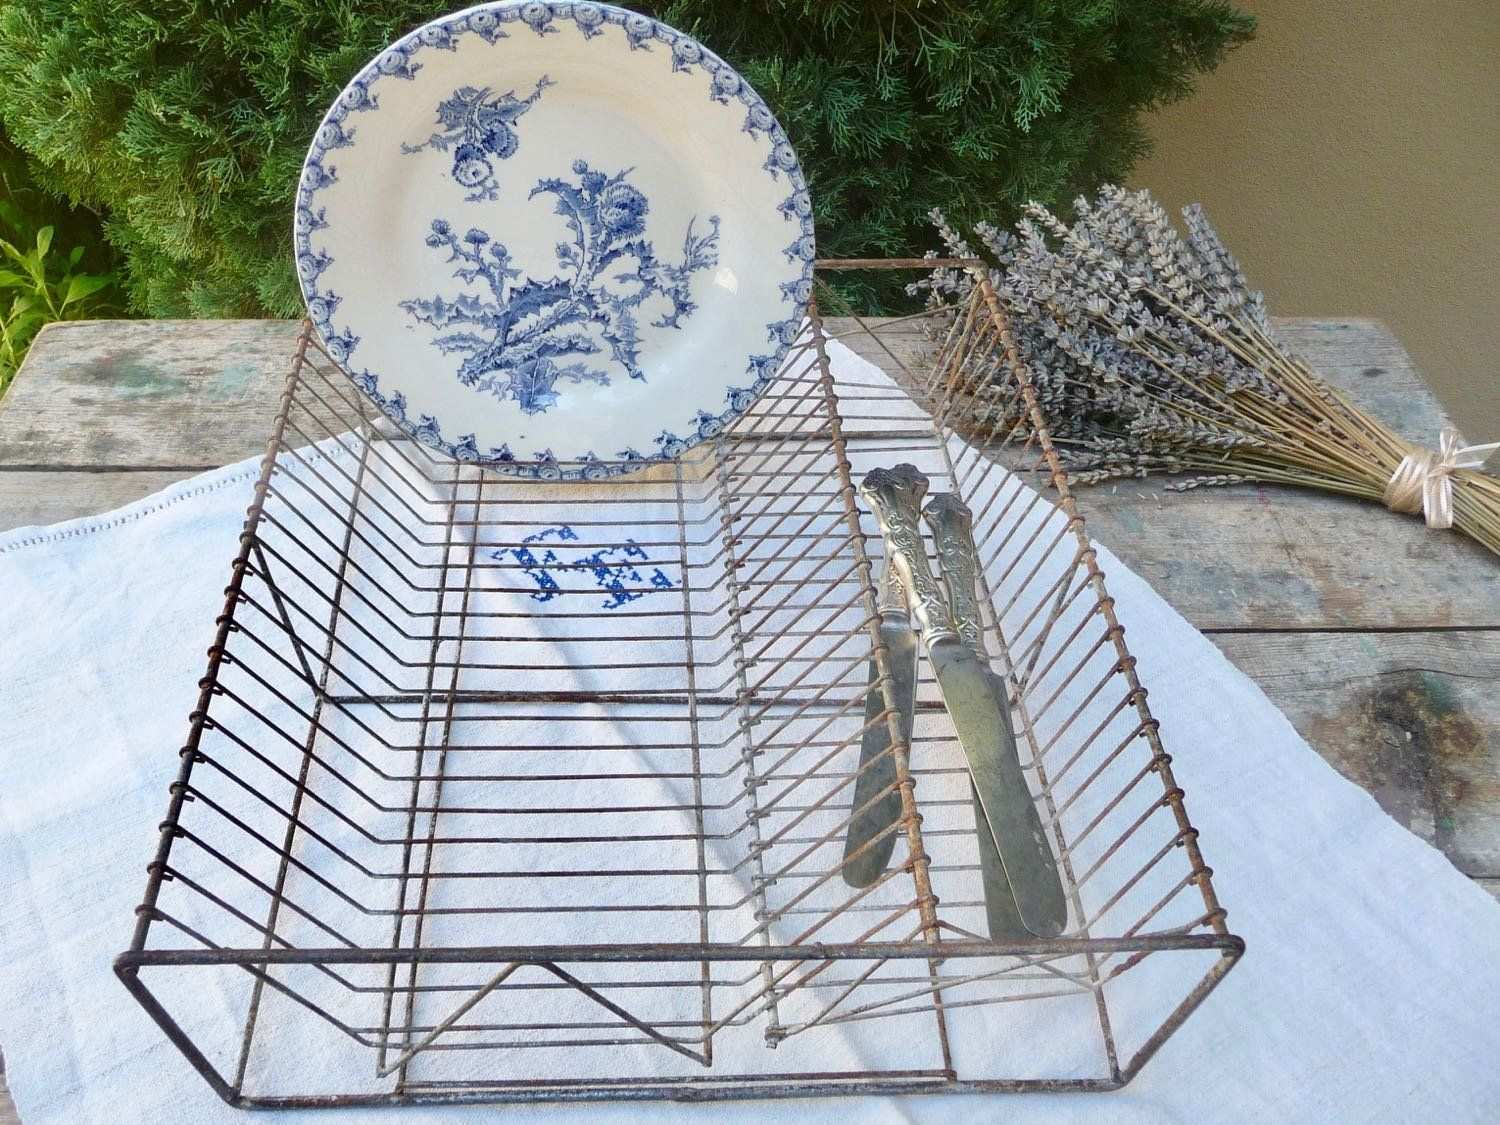 Vintage French Dish Rack Zinc Metal Drainer Basket Tray Shabby Chic Drying Farmhouse Plate Prop By Onefairfaxroad